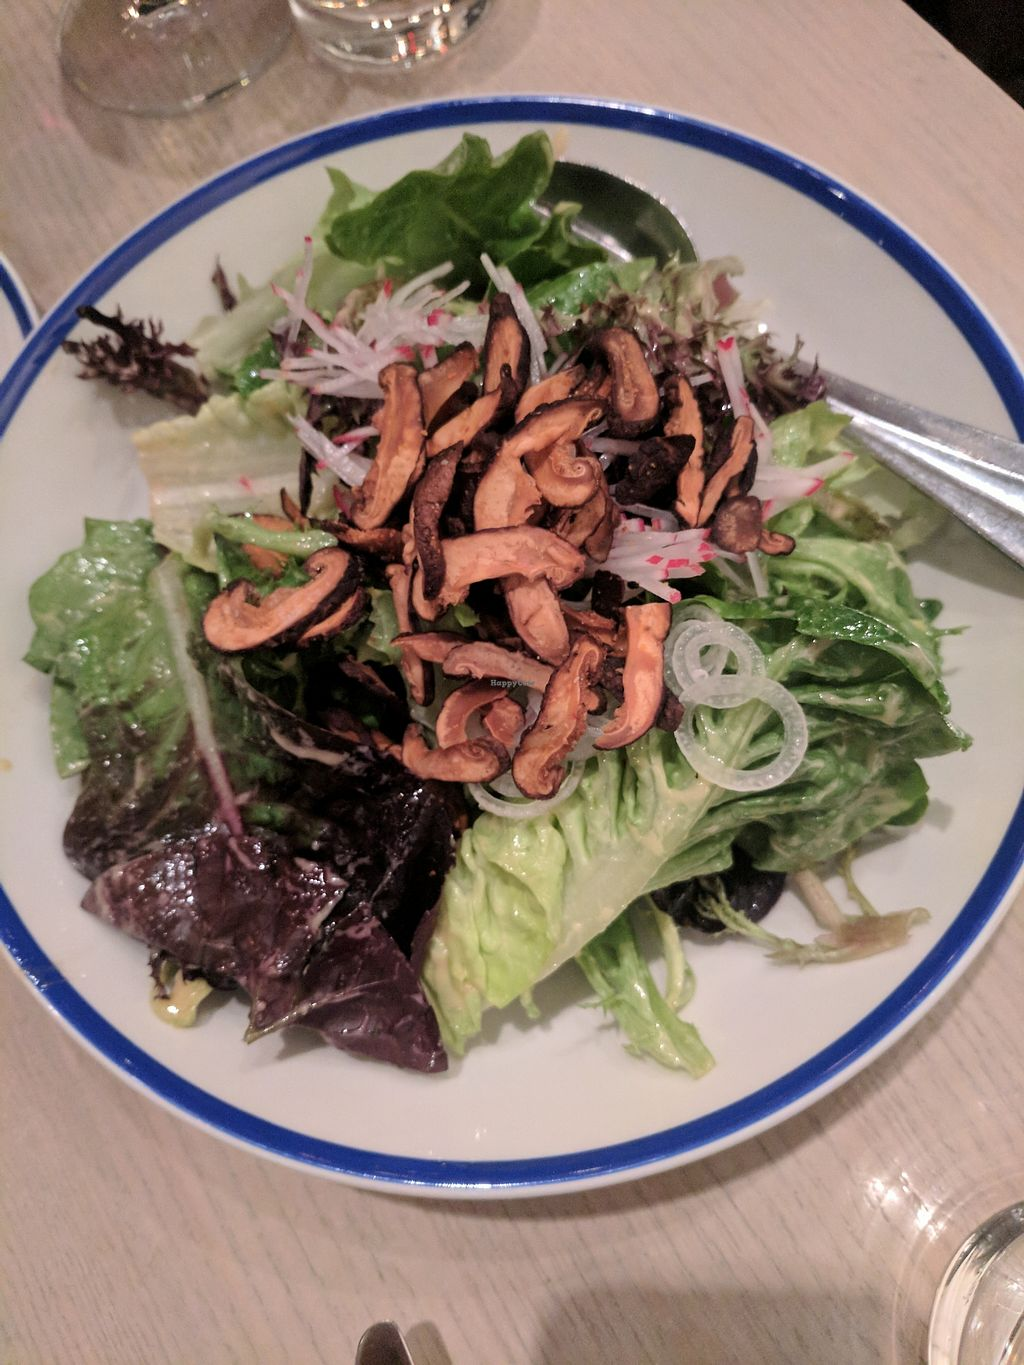 """Photo of Ten Foot Henry  by <a href=""""/members/profile/lmcc"""">lmcc</a> <br/>Henry Salad with crispy shiitake mushrooms <br/> March 4, 2018  - <a href='/contact/abuse/image/107338/366815'>Report</a>"""